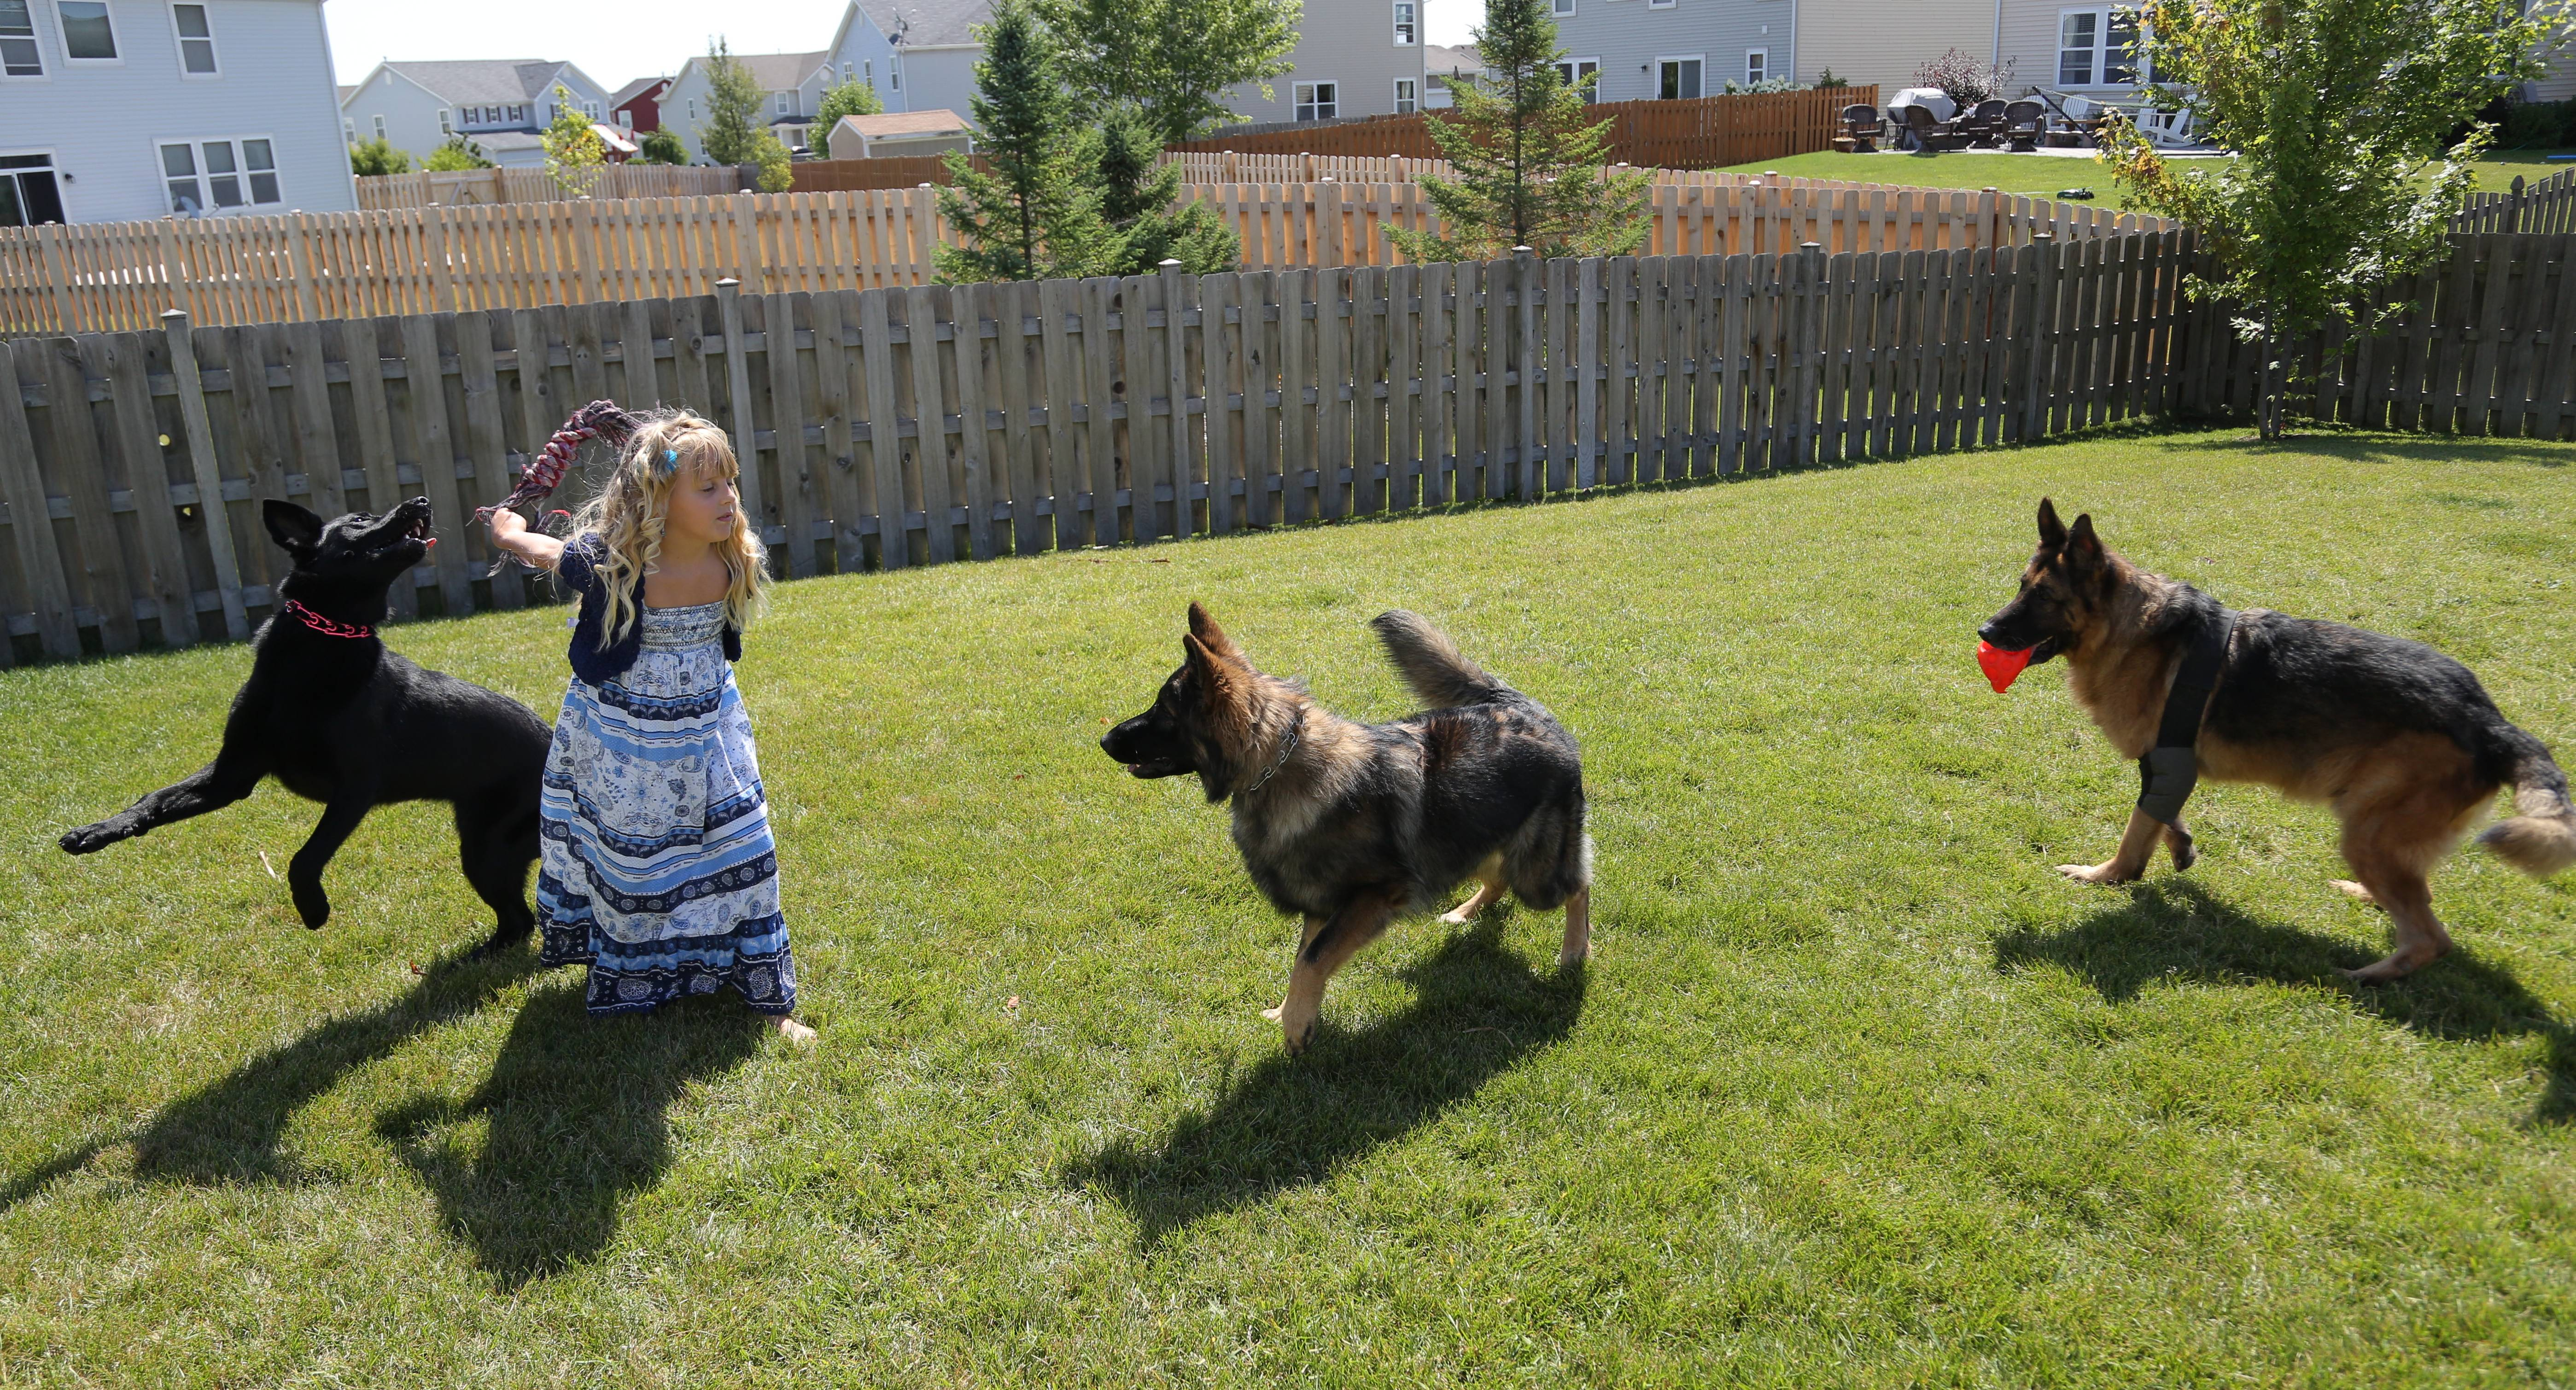 Allison Mazur, 8, plays with retired police dog Shane, right, active dog Hunter, middle, and puppy Talia at their home in Kenosha, Wisconsin.